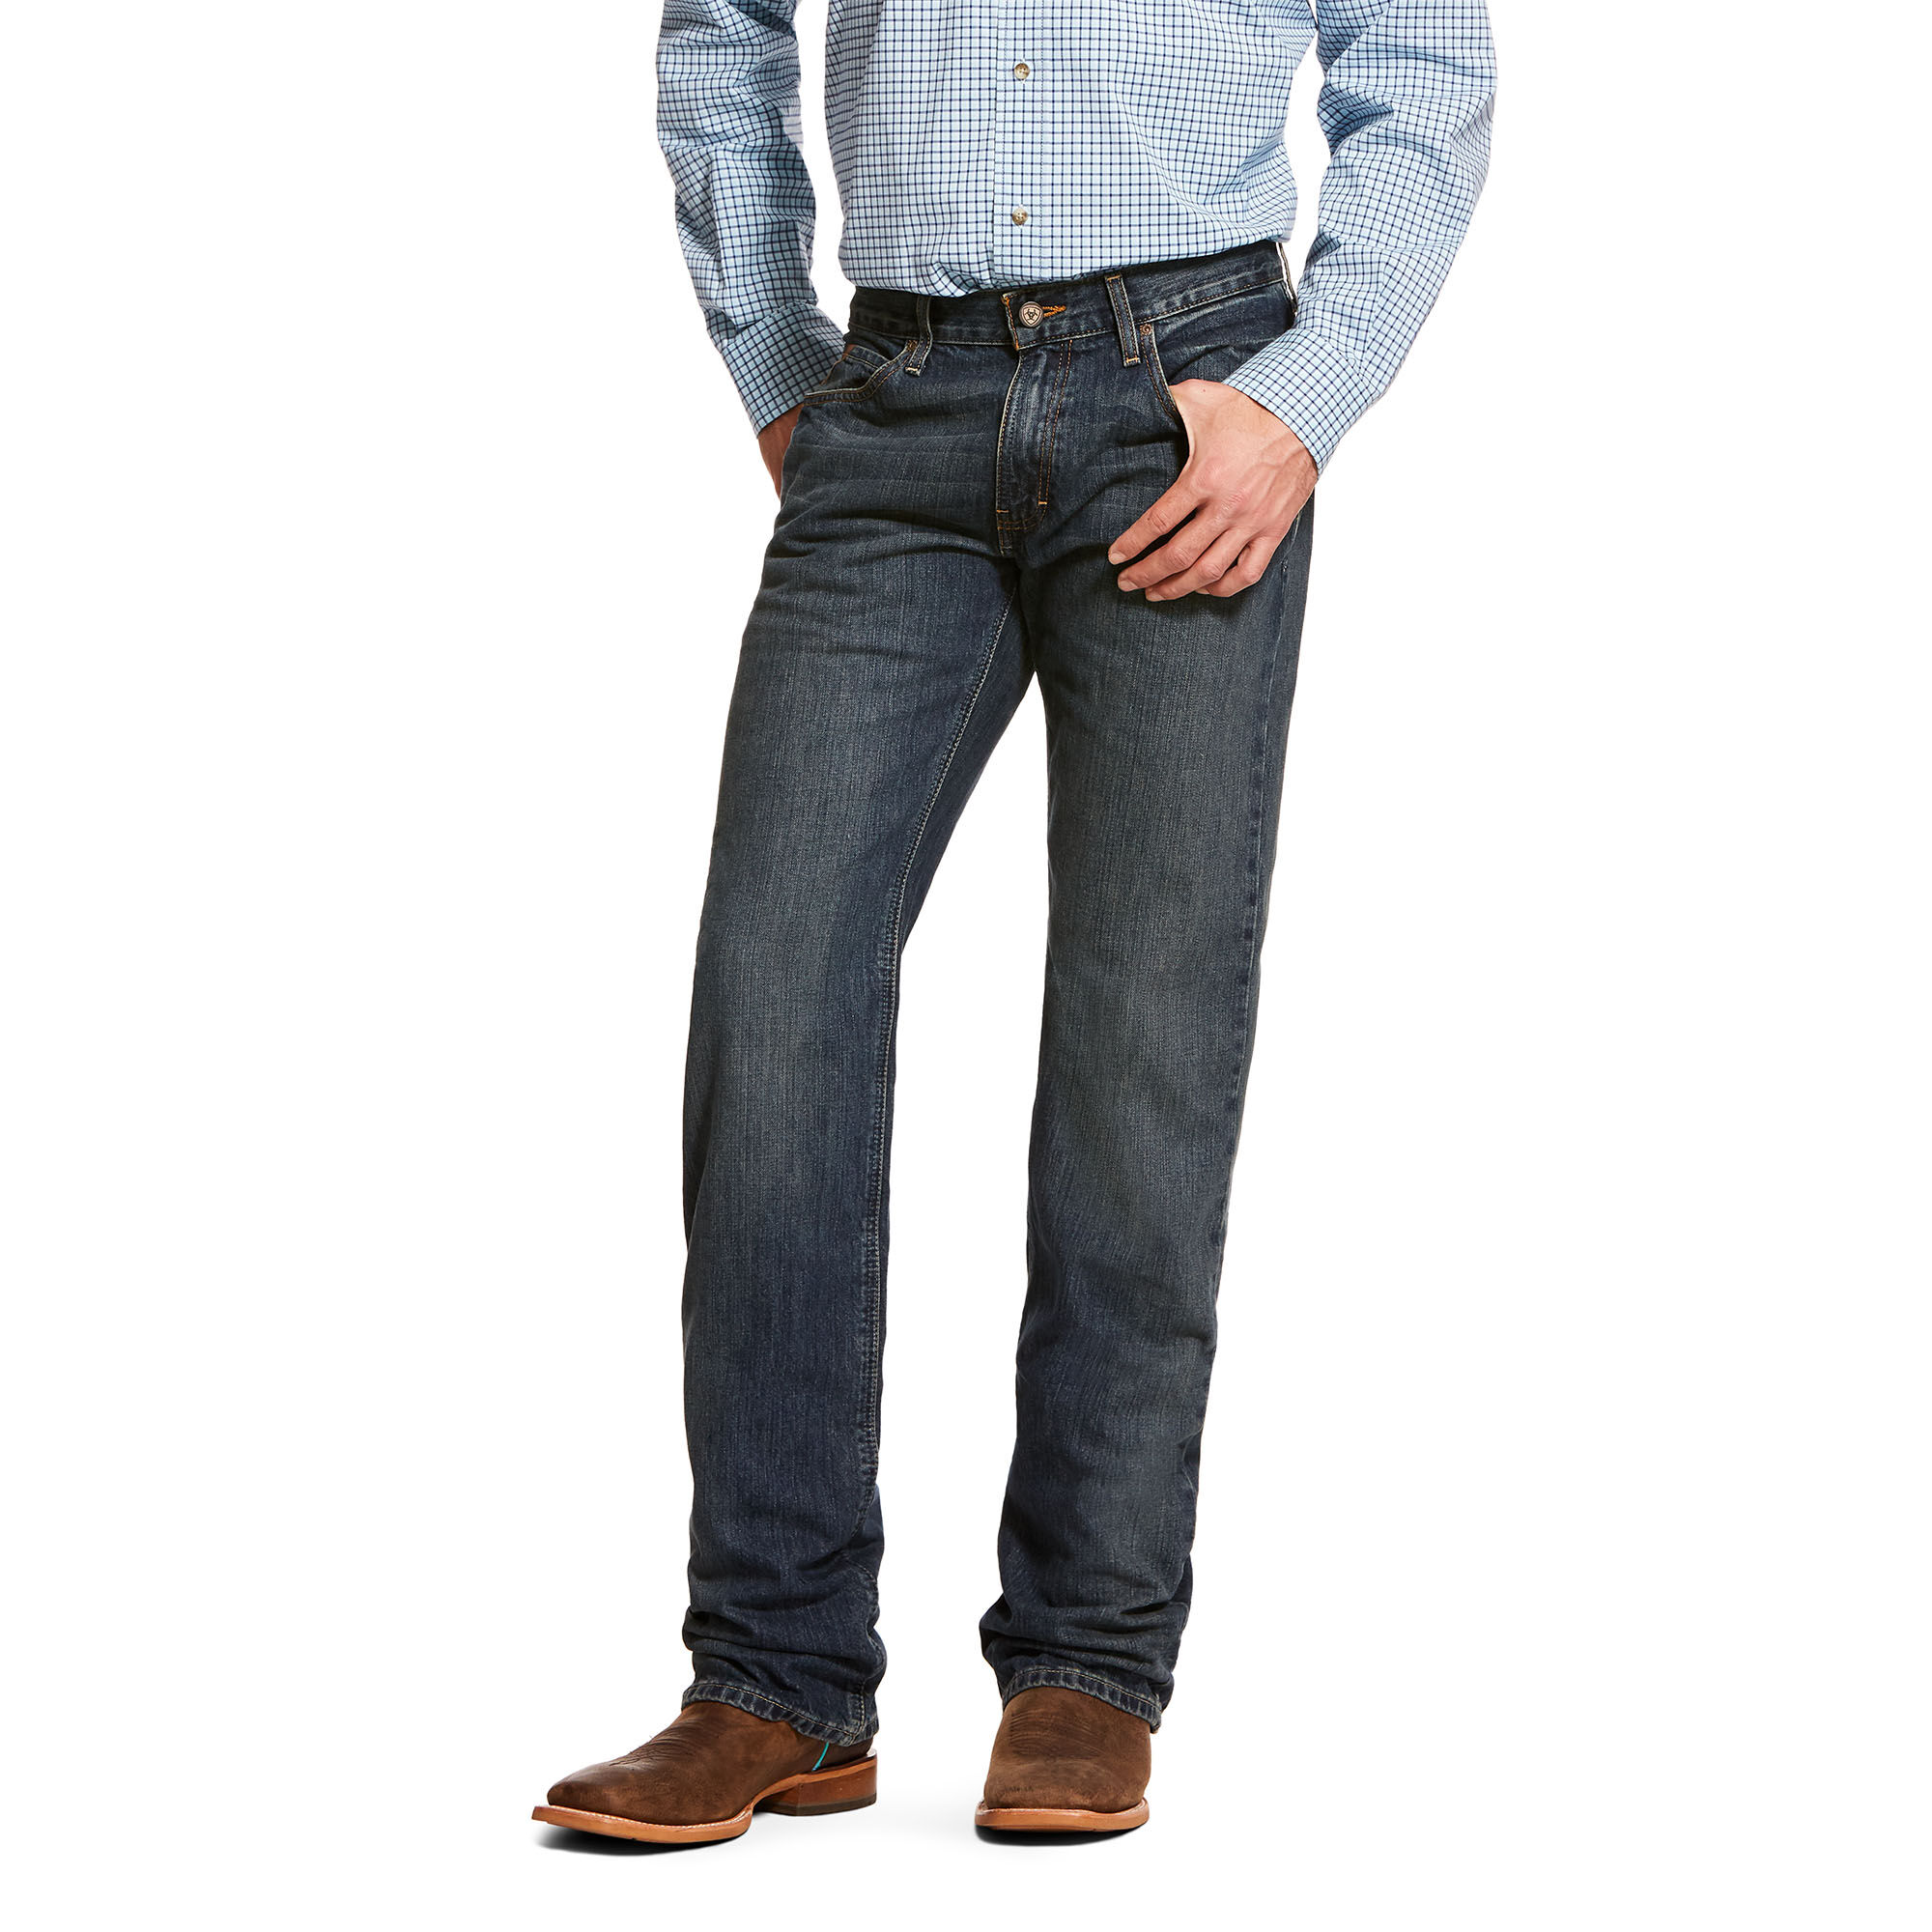 Ariat Men/'s M4 Tabac Low Rise Jeans